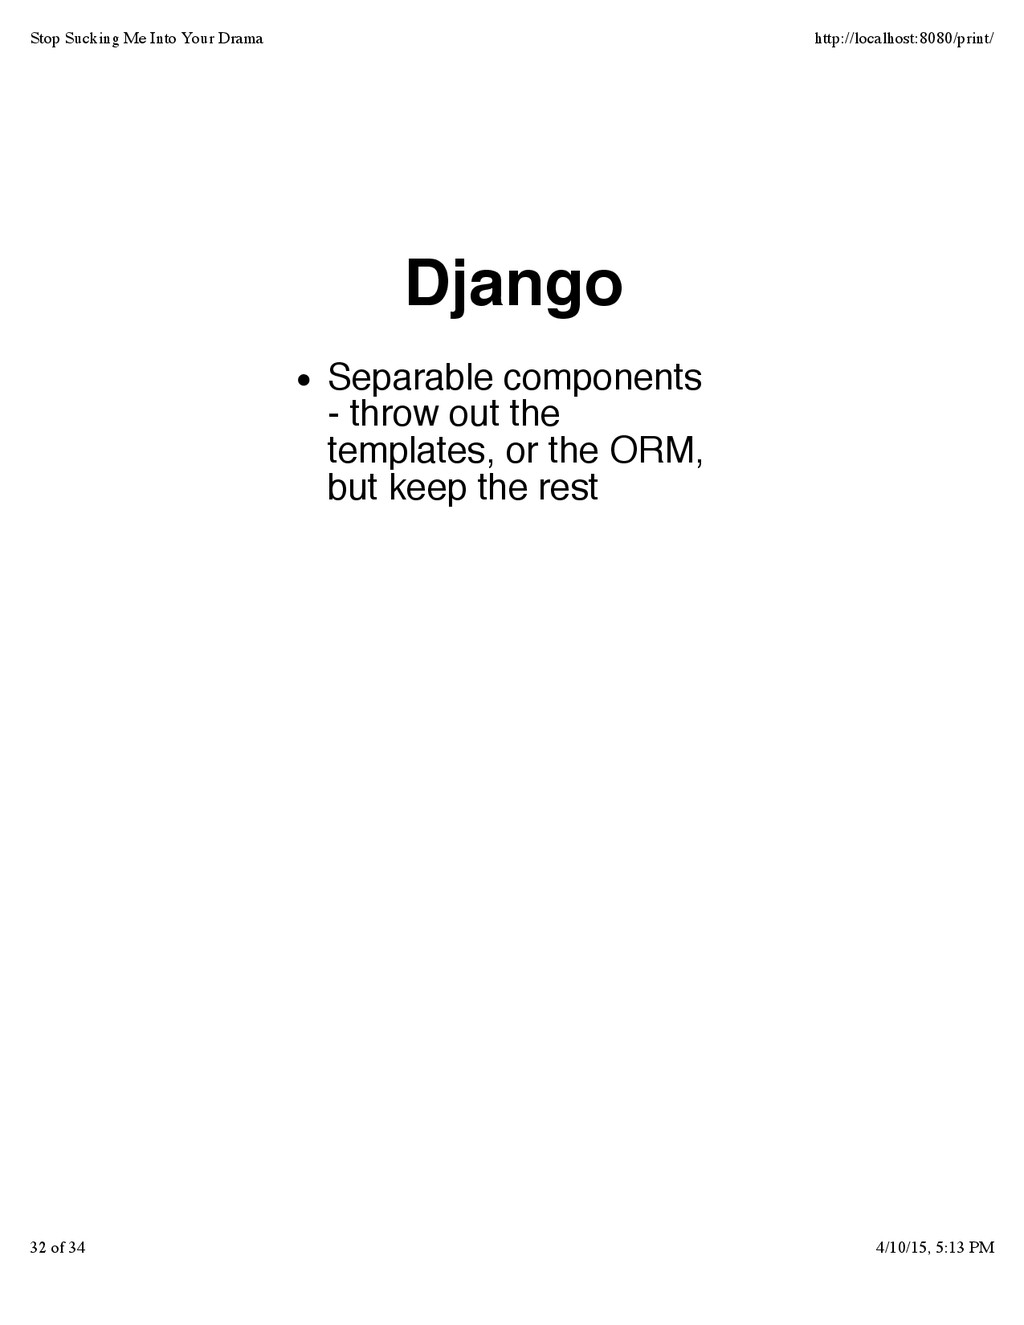 Django Separable components - throw out the tem...